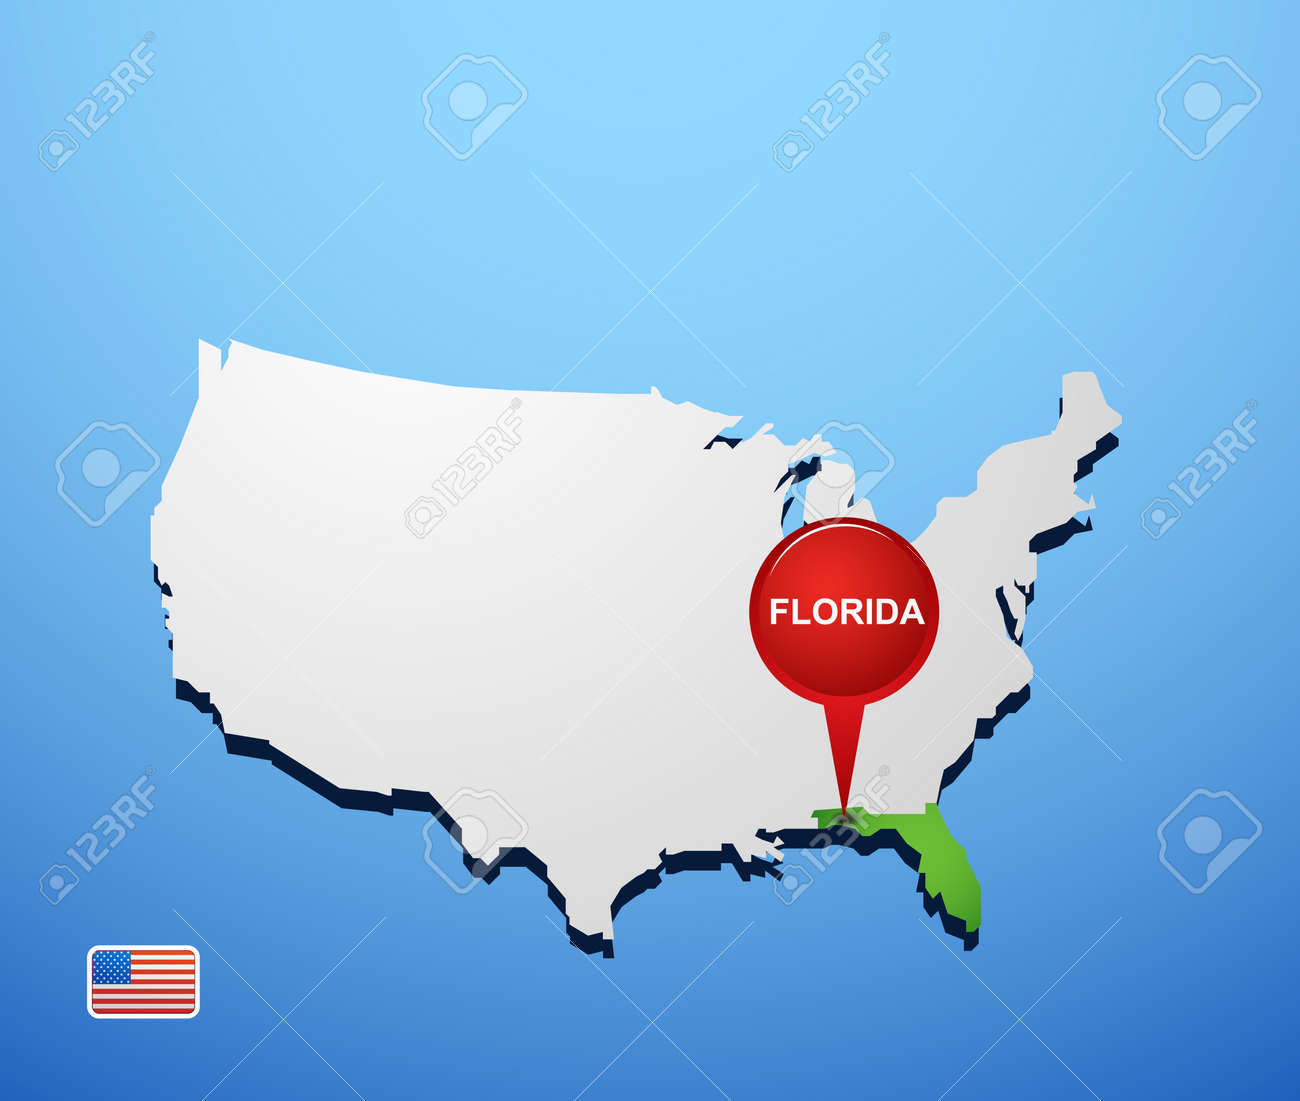 Outline Map Of Florida With Florida Free Maps Free Blank Base Maps - Florida on us map